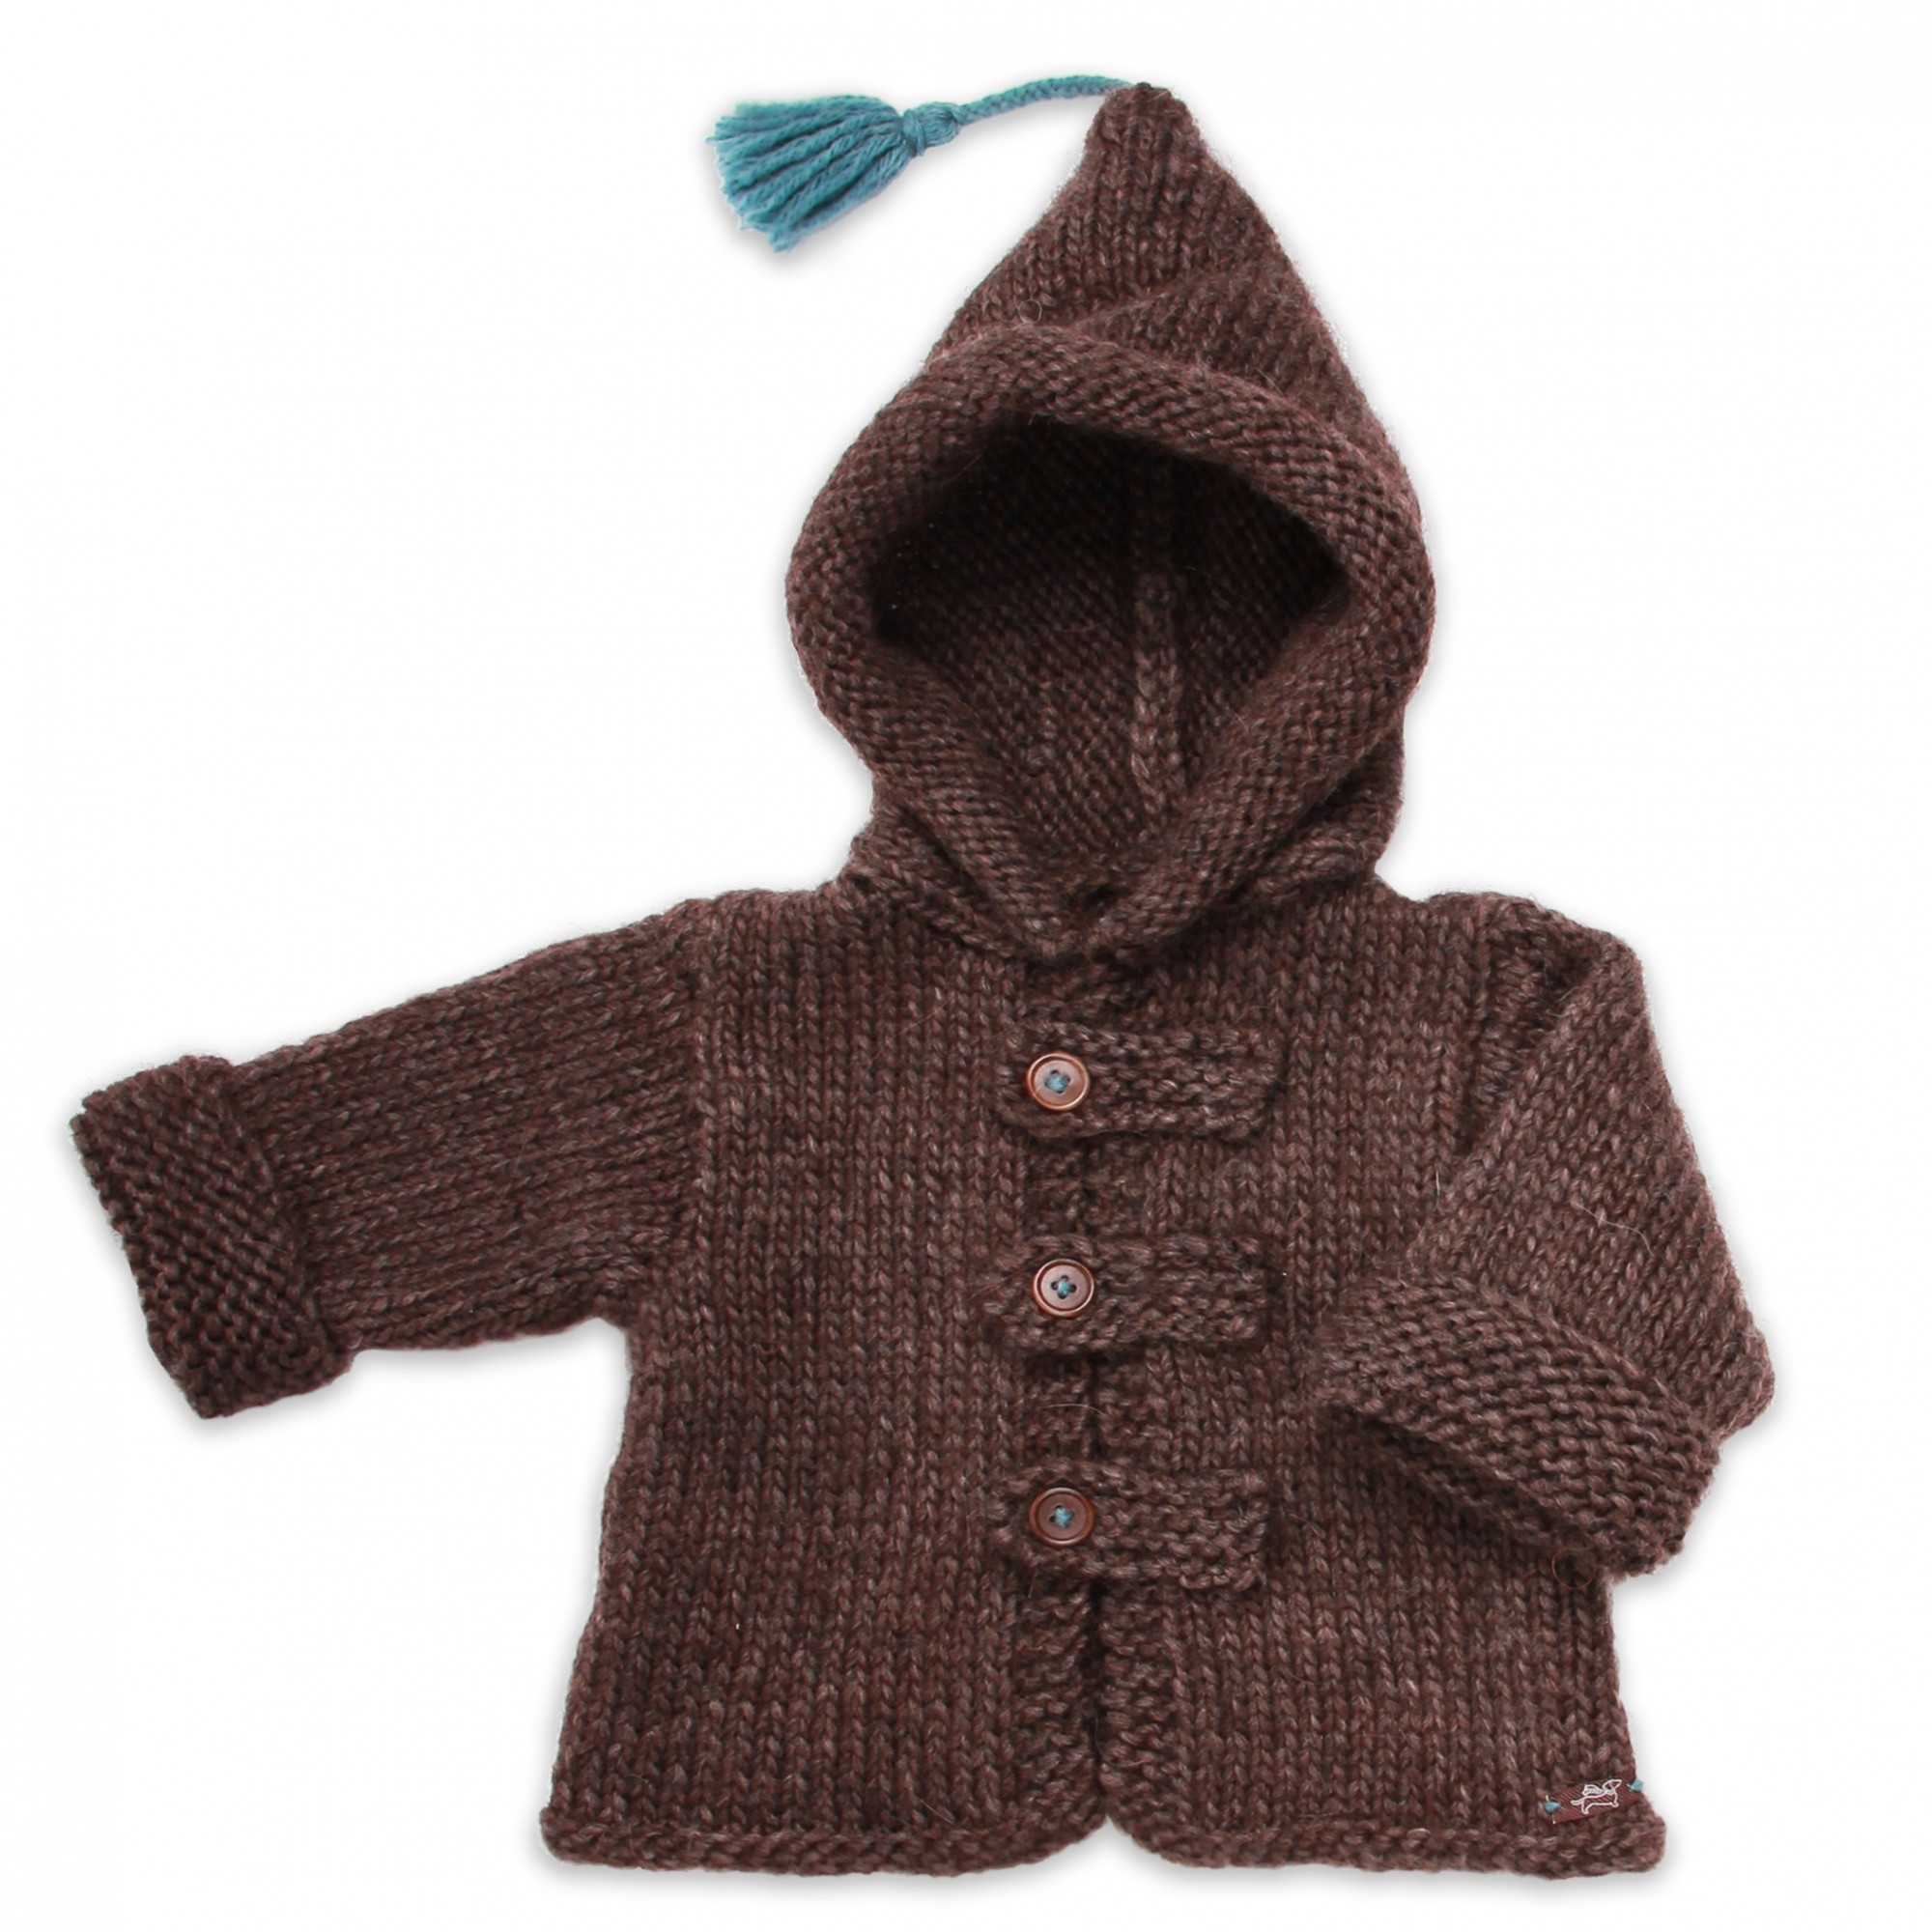 d72b53a7d Knitted brown baby coat with cuffed sleeves